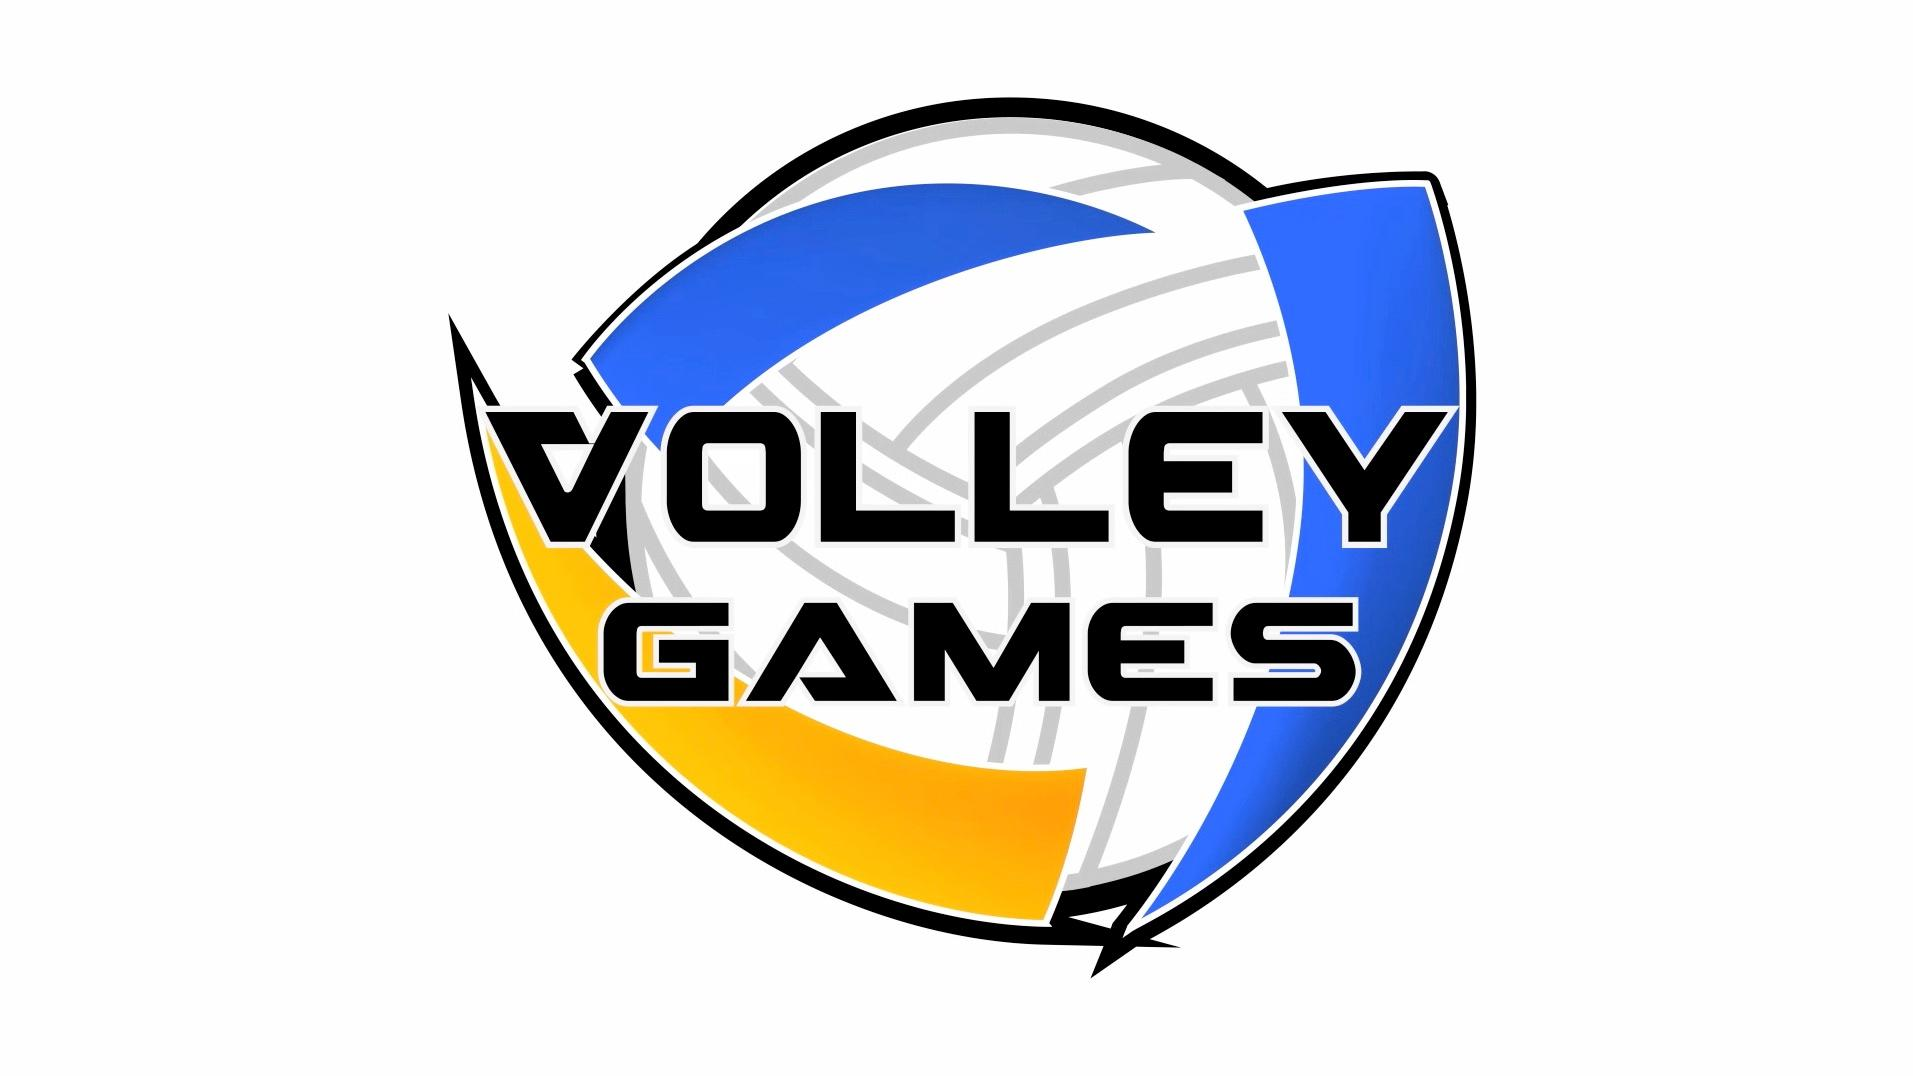 Volley Games - 24/02/17